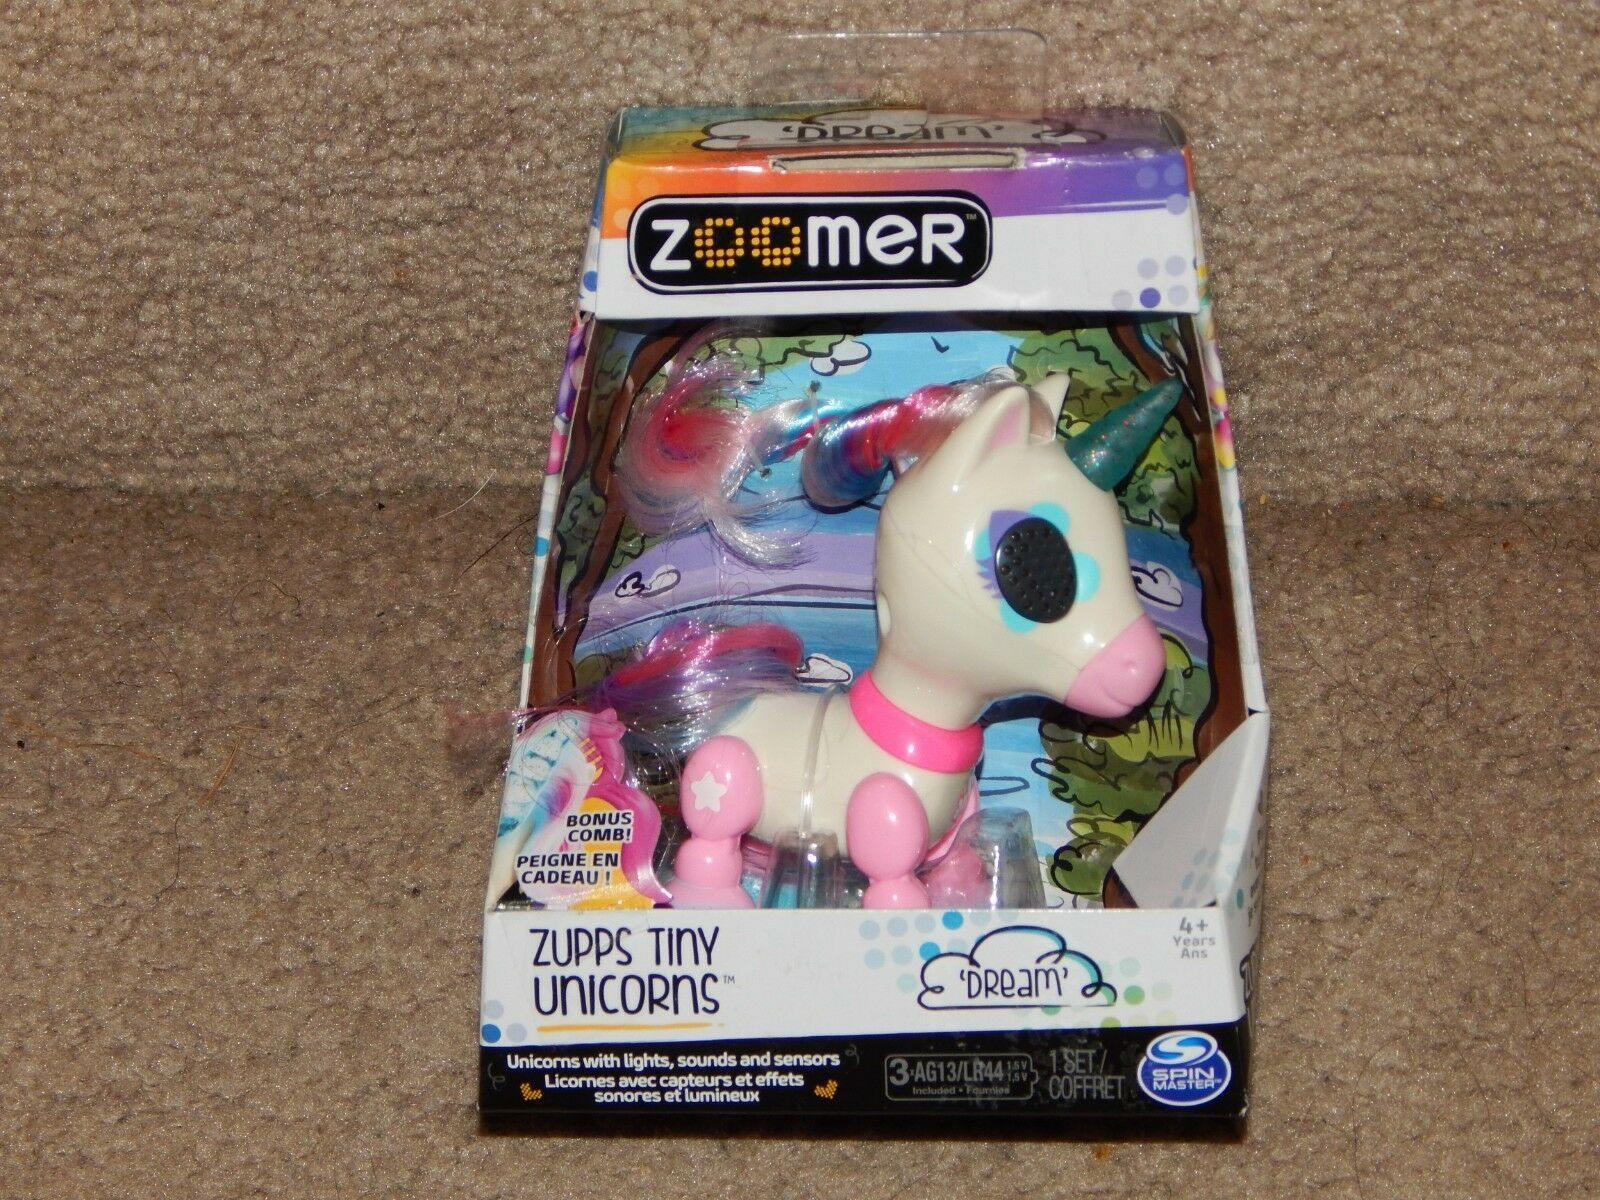 New! Zoomer Zupps Tiny Light-Up Horn Unicorns Figure Dream 4+ Free Shipping